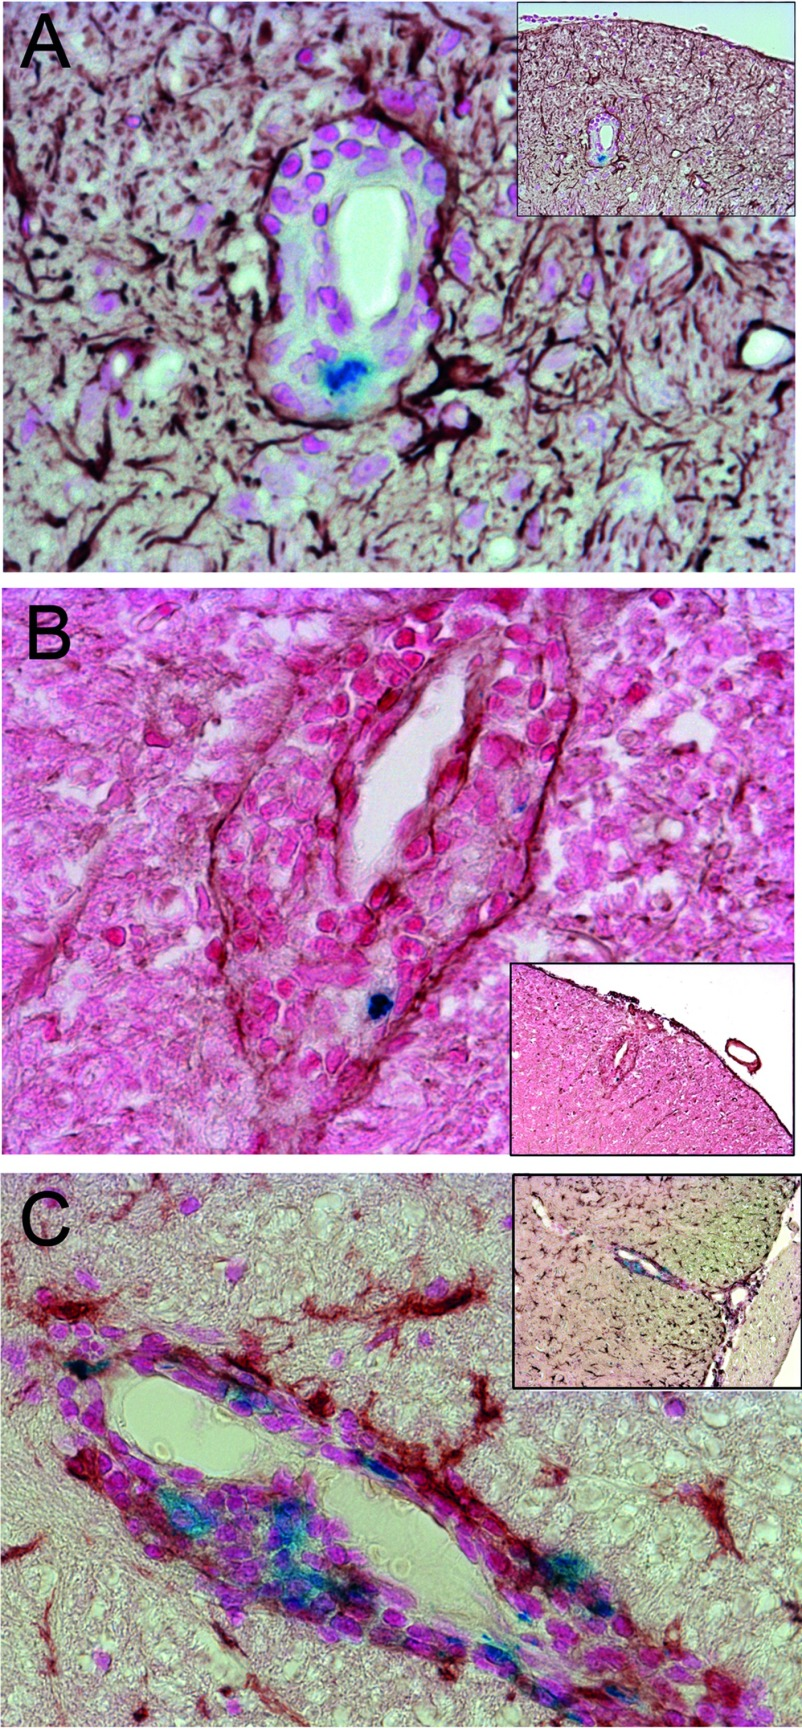 VSOP observed in perivascular-restricted spinal cord lesions with intact BBB ( A ) GFAP immunostaining (brown) shows astrocyte end foot processes surrounding a lesion with immune infiltrates (stained with Nuclear Fast Red) and including VSOP (blue). ( B ) Immunostaining for laminin (brown) shows vascular endothelium and glia limitans of a perivascular lesion, along with infiltrating cells and VSOP (blue). ( C ) Immunostaining for iba-1 (brown) shows the presence of microglia in CNS parenchyma, and activated microglia/macrophages associated with VSOP (blue) located in the perivascular lesion. Original magnification: ( A – C ) ×200.